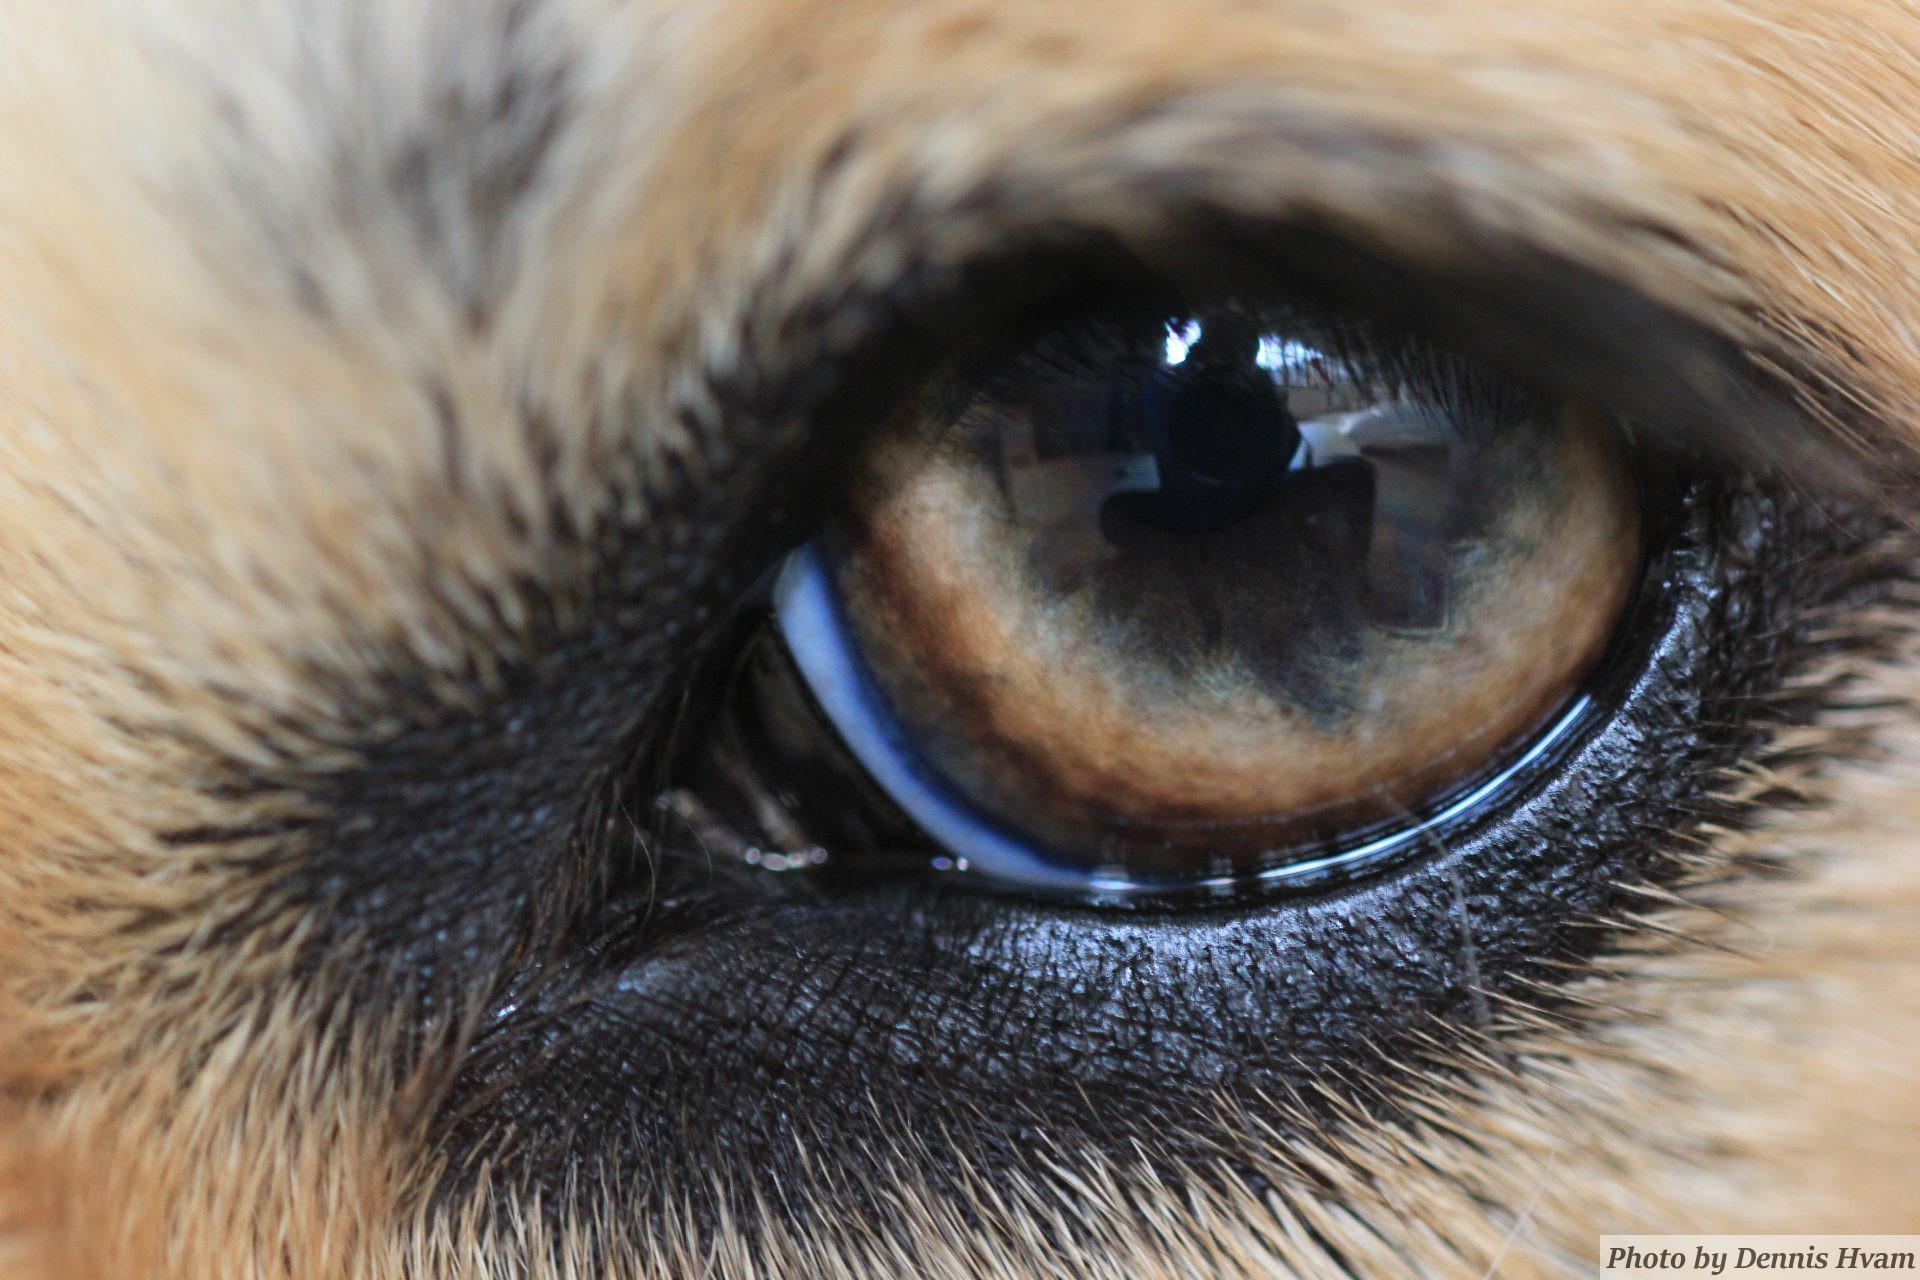 The eye of my dog